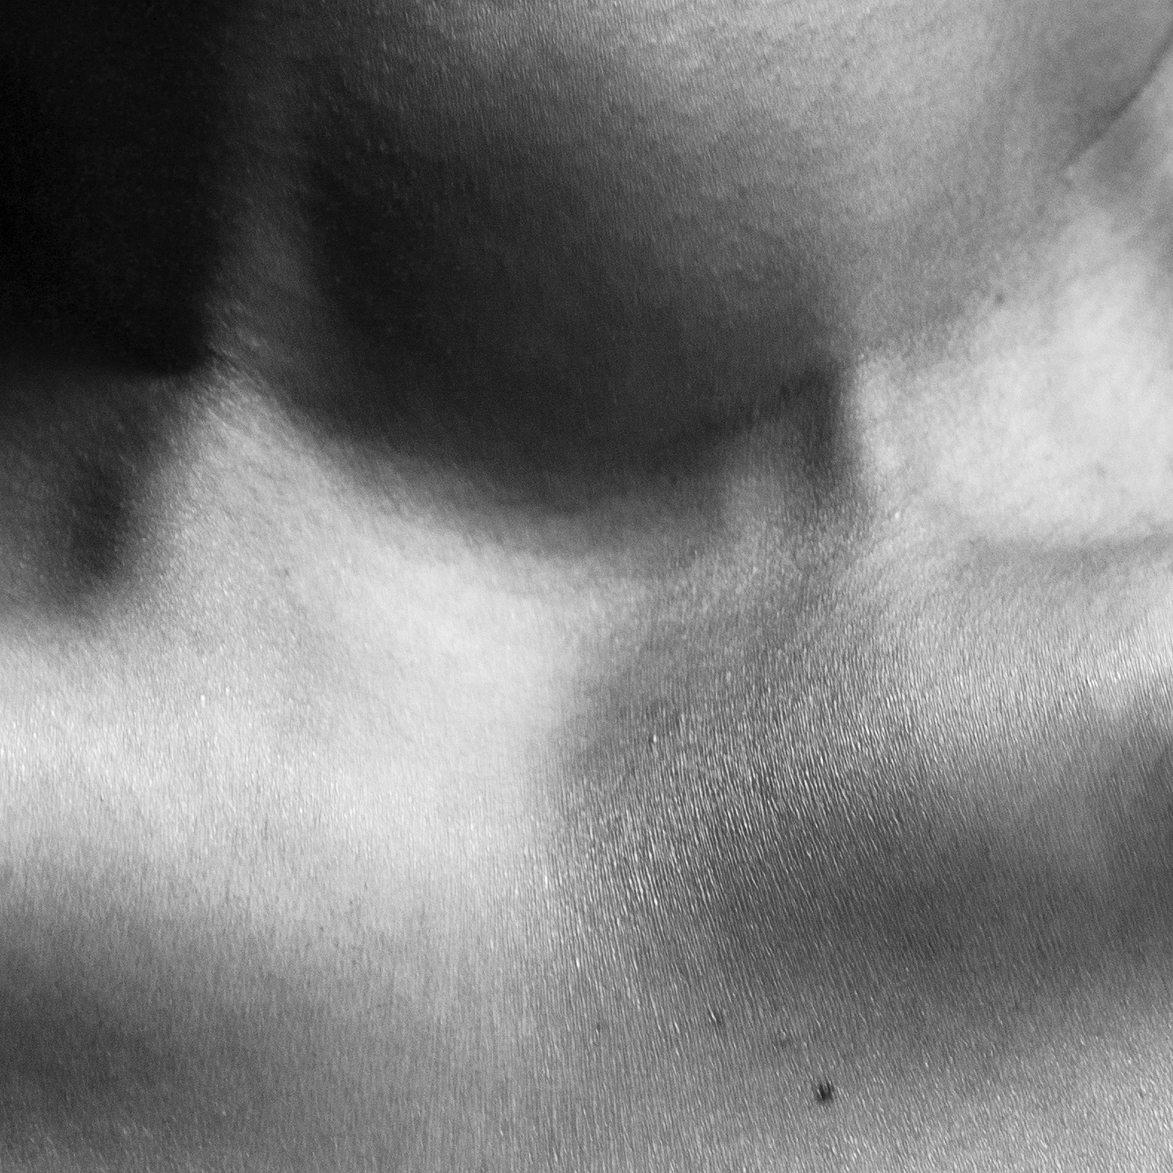 Abstract black and white photographs depict beauty in the human body